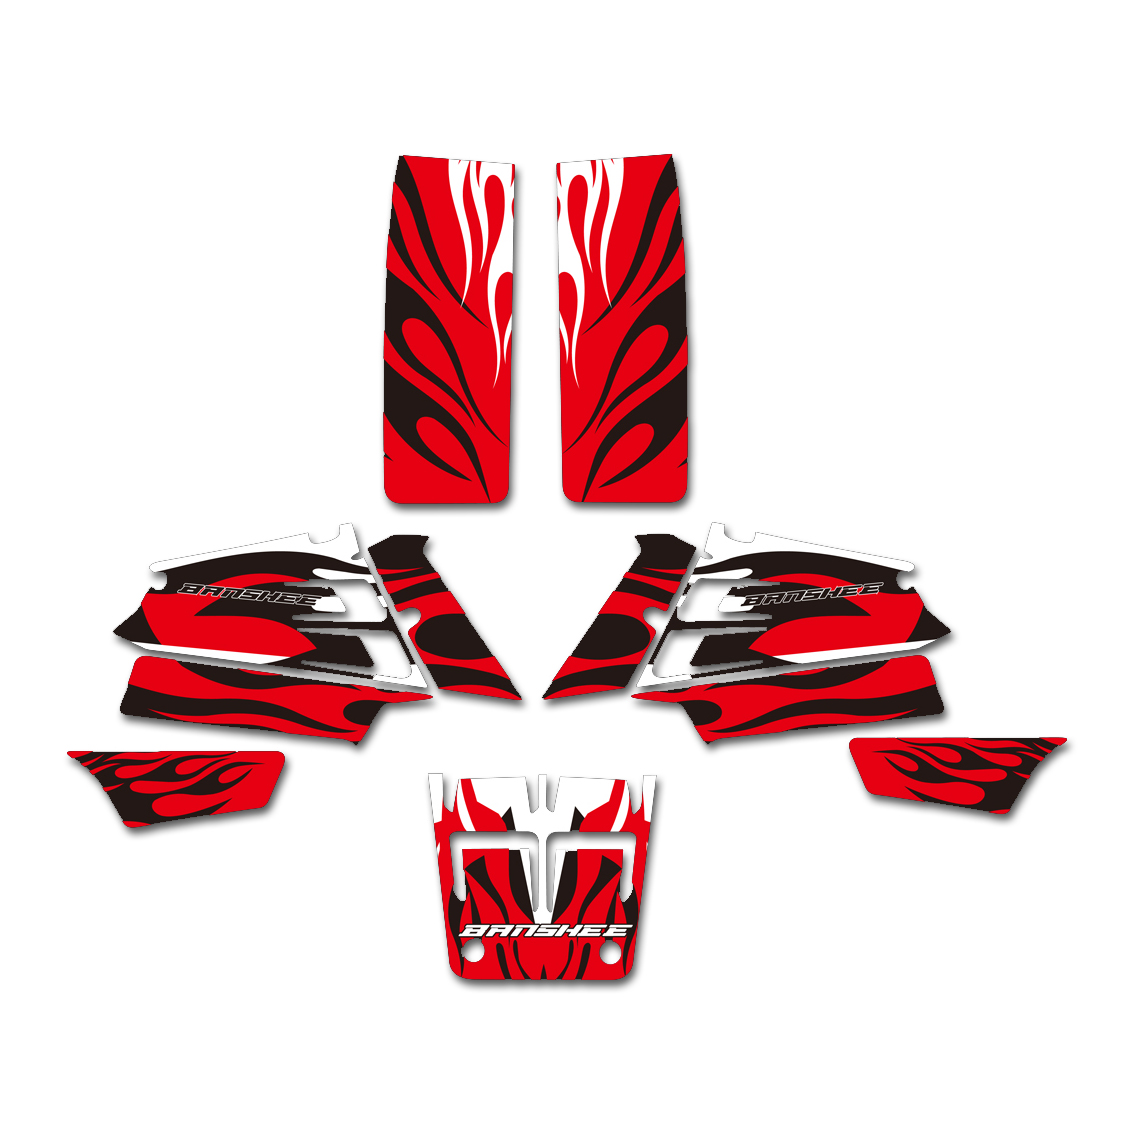 New Style Red Fire DECALS STICKERS Graphics Kits for Yamaha YFZ350 BANSHEE 350 ATV 1987-2005 image